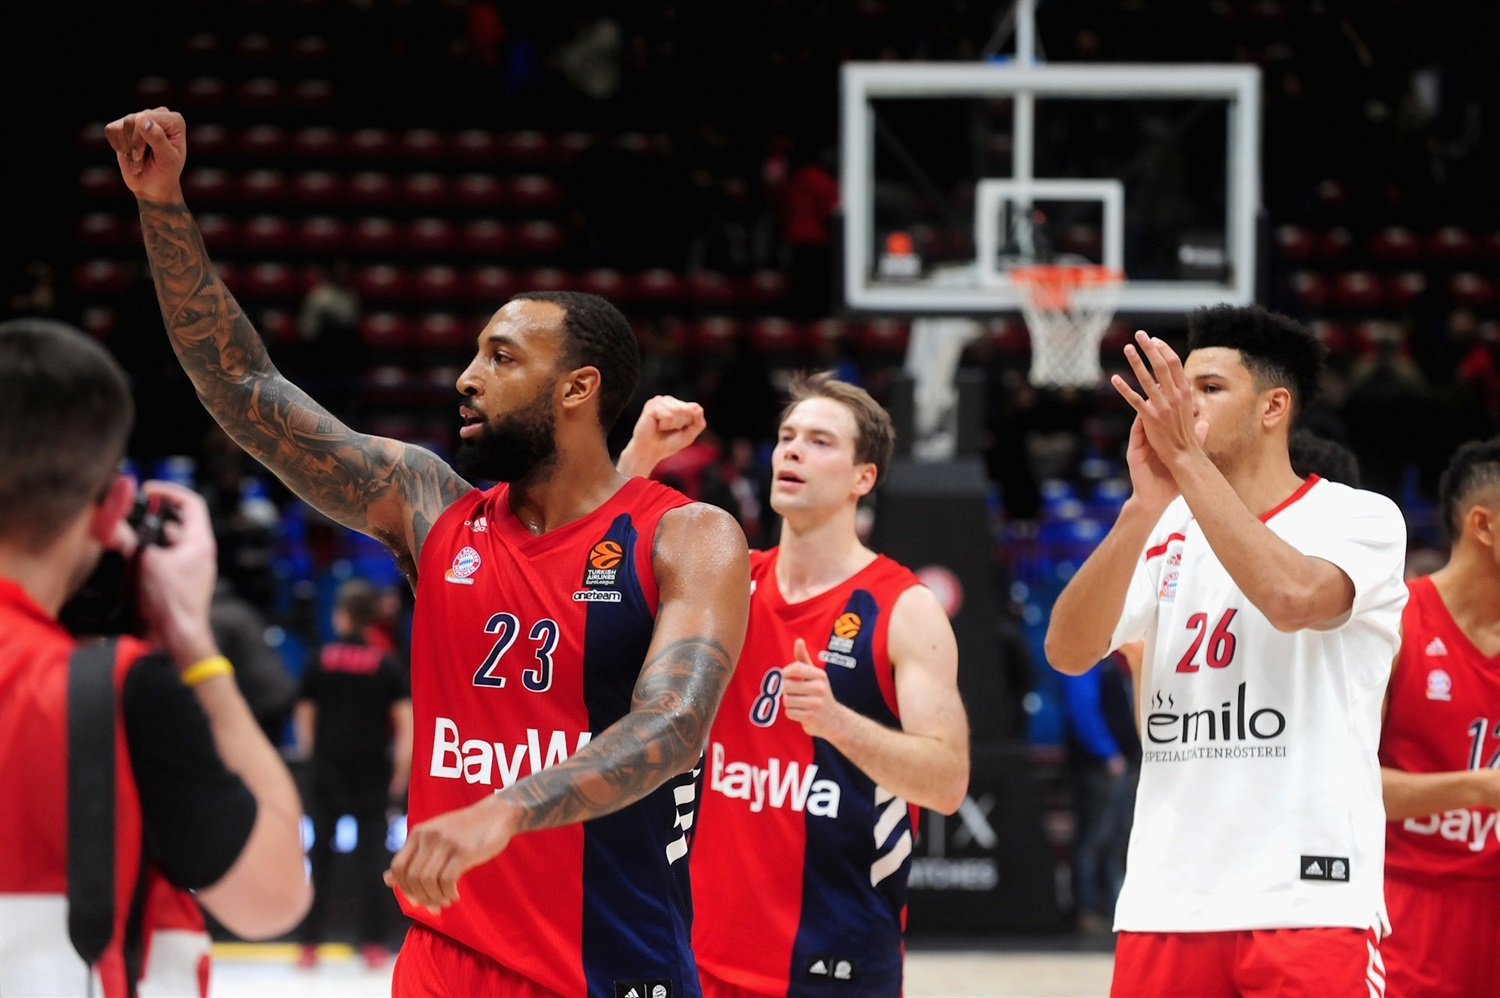 Derrick Williams celebrates - FC Bayern Munich - EB18